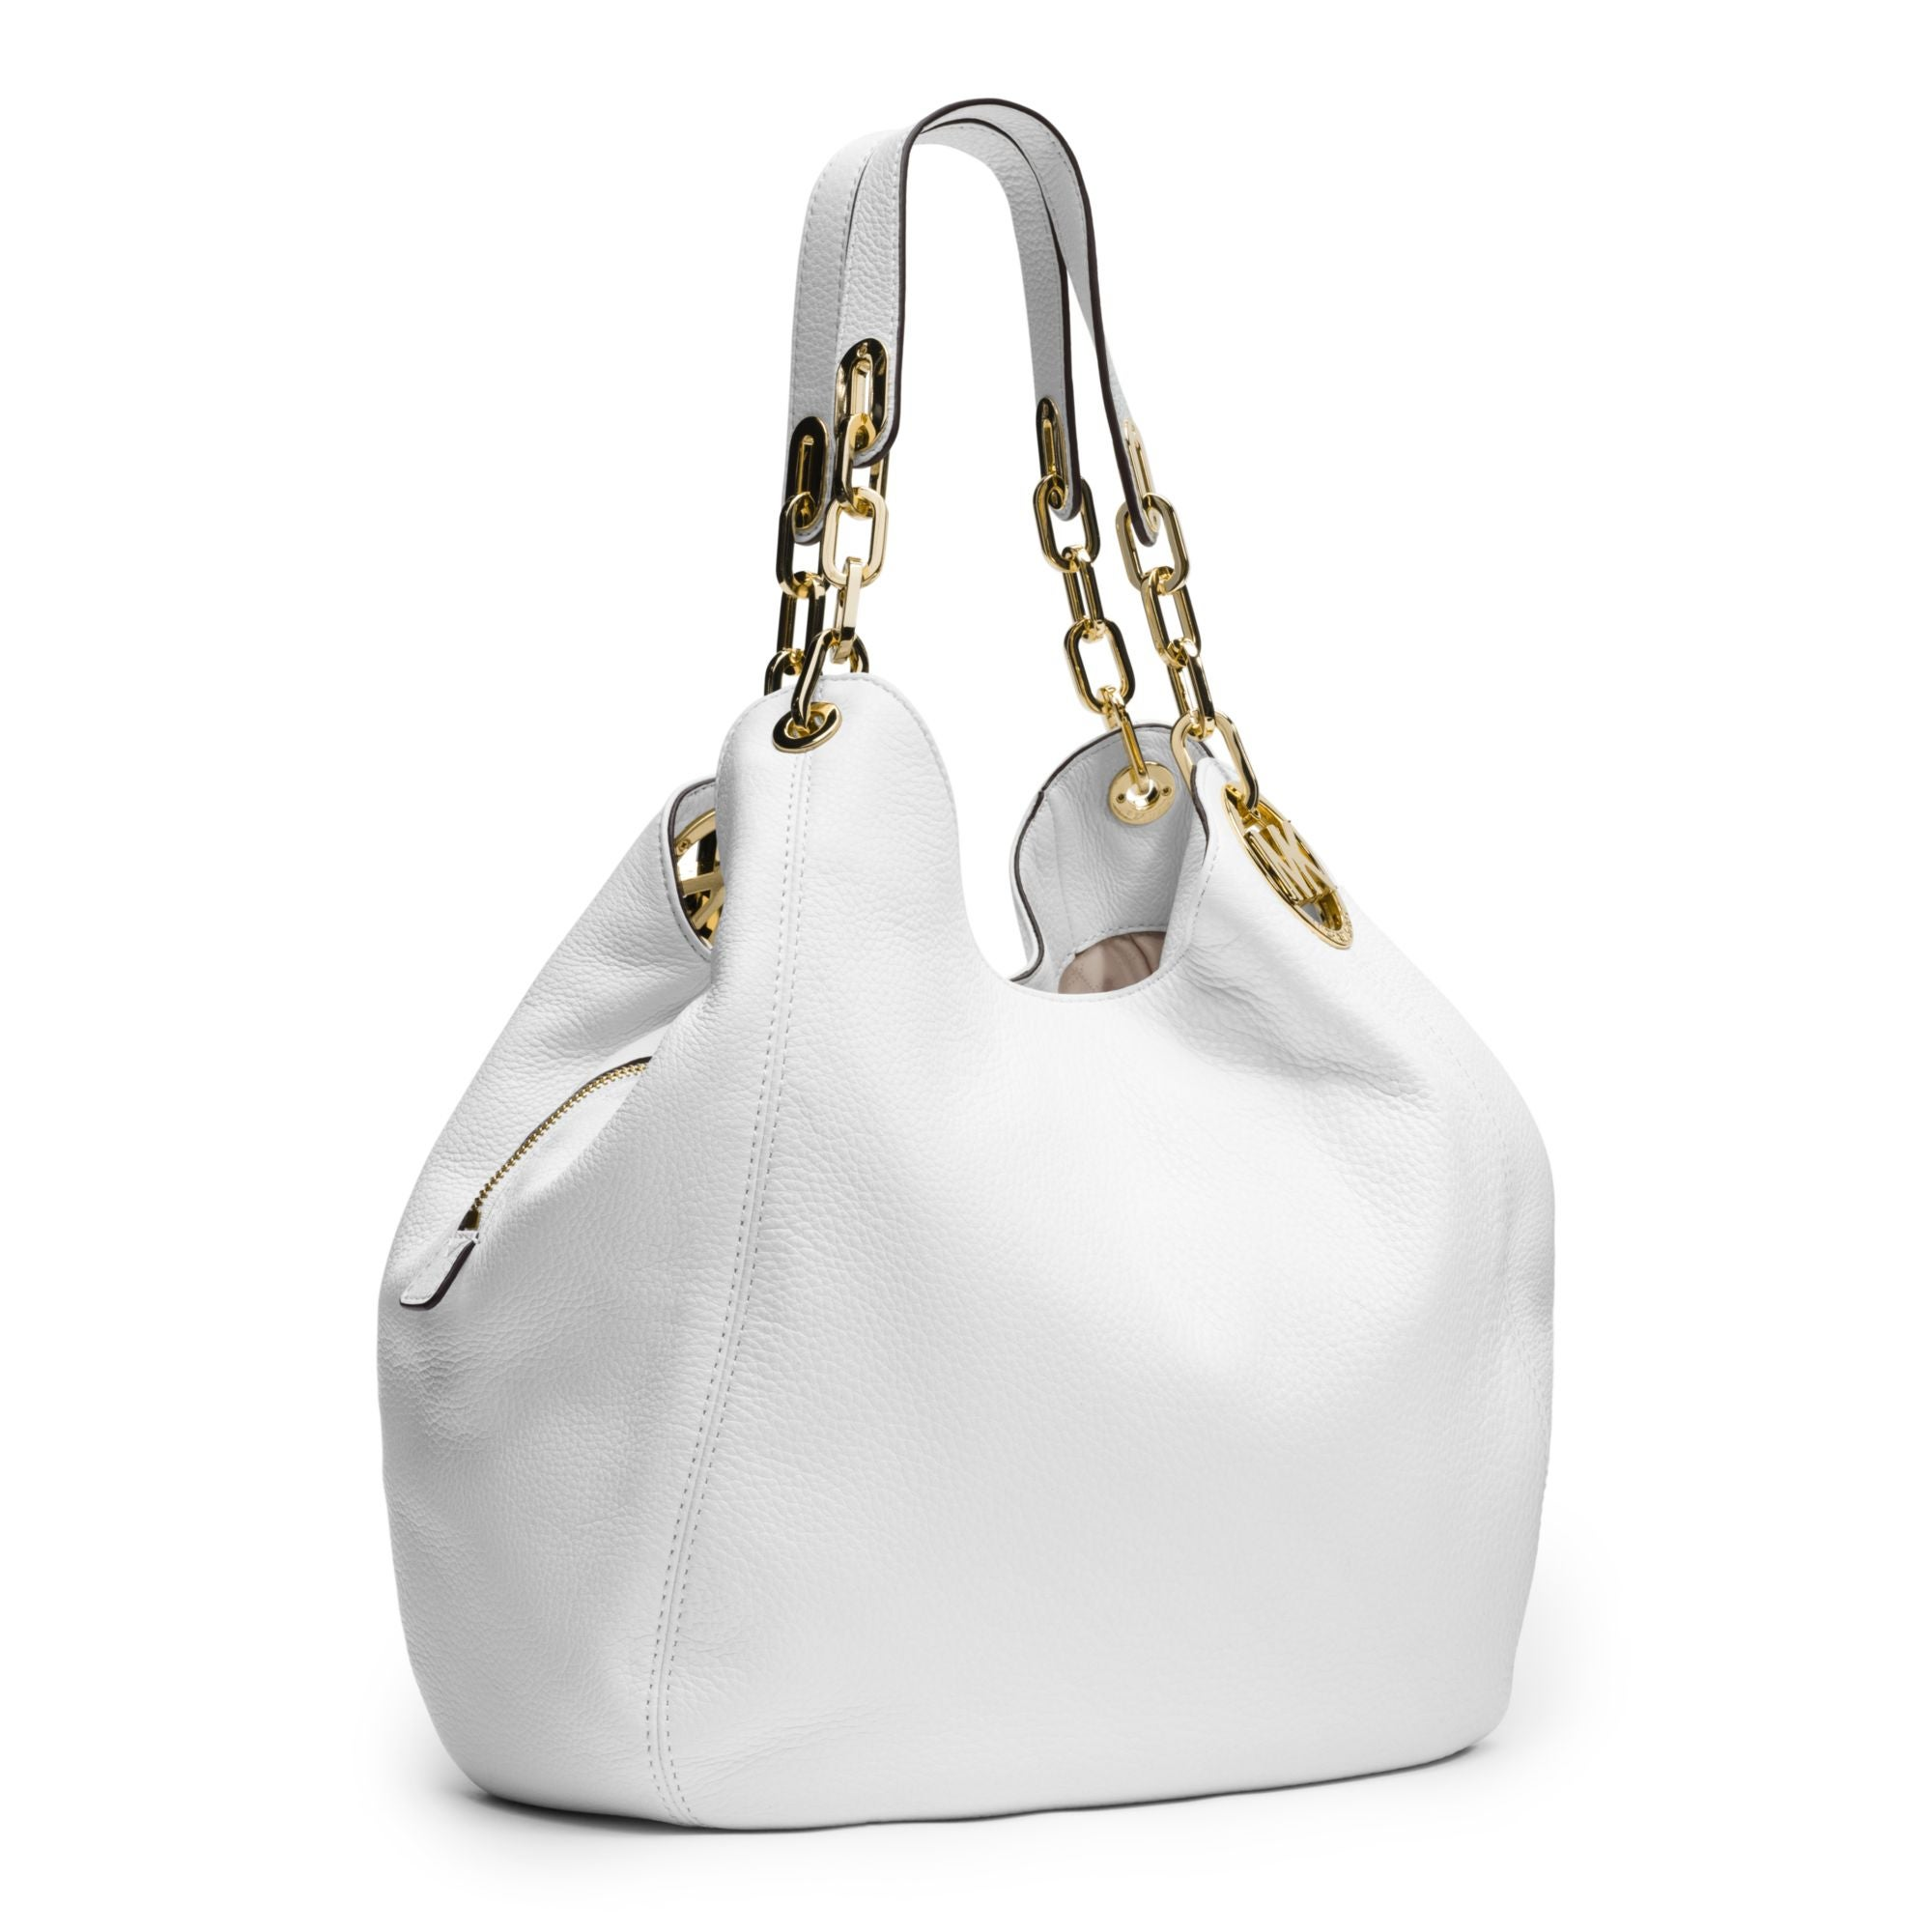 67d60a6482 Shop Michael Kors Fulton Optic White Large Shoulder Tote Bag - Free  Shipping Today - Overstock - 12352919